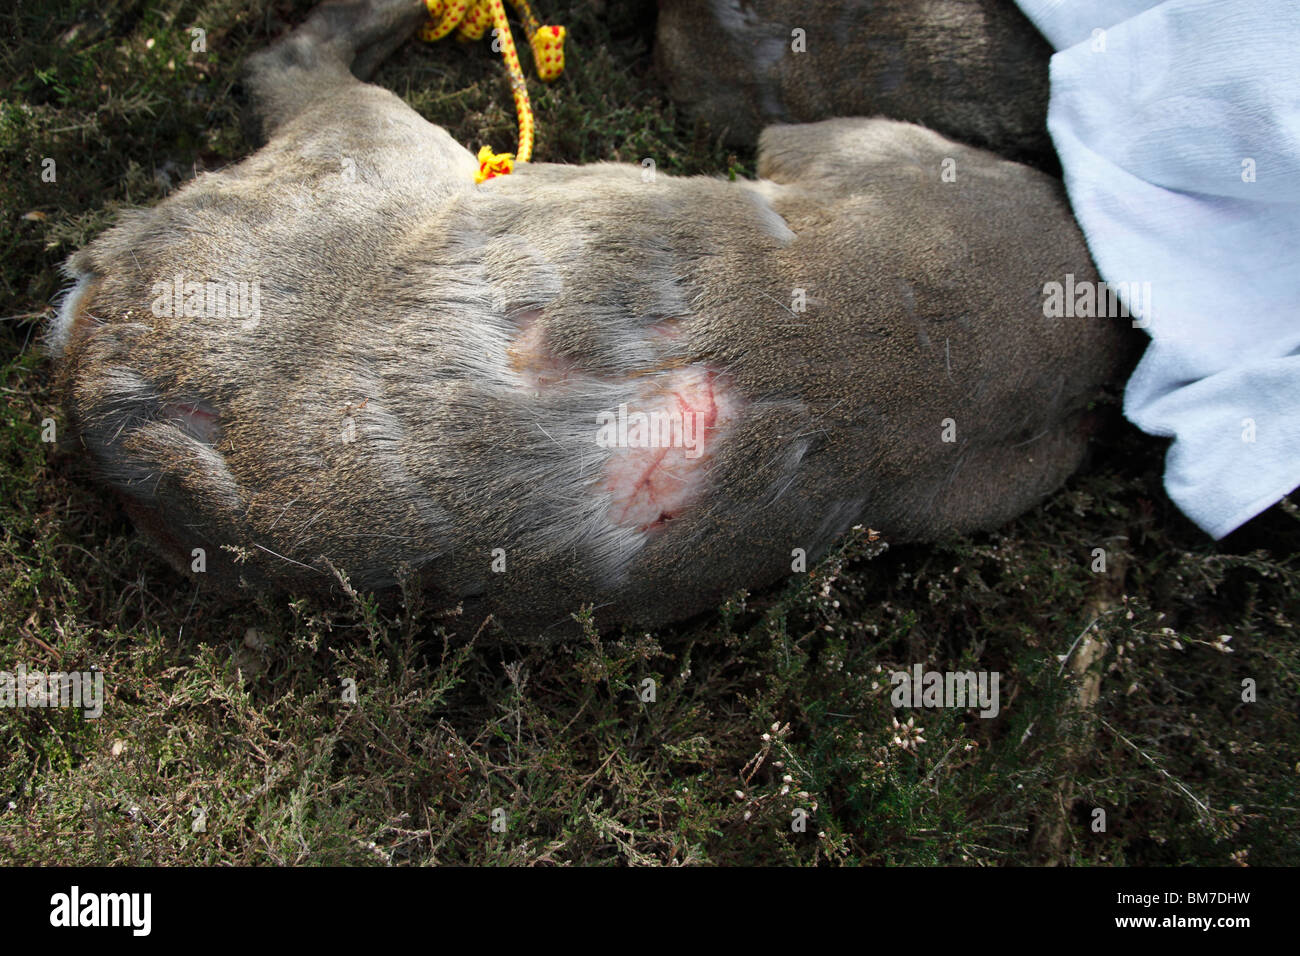 Roe deer (Capreolus capreolus) showing fight damage inflicted by hooves - Stock Image